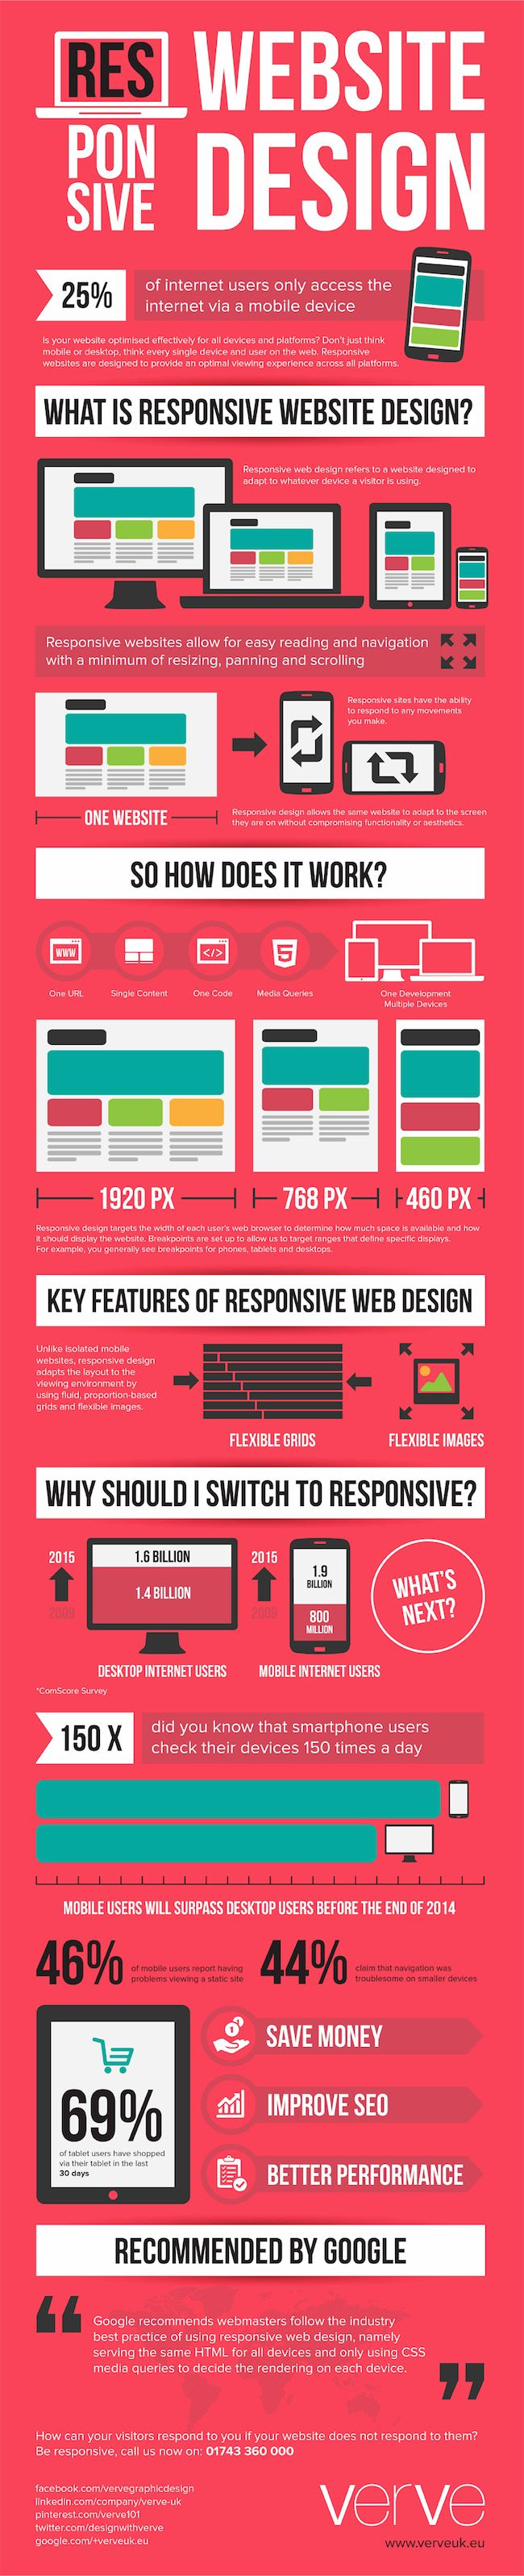 Learn about responsive web design from this infographic, via @HubSpot | via #BornToBeSocial - Pinterest Marketing